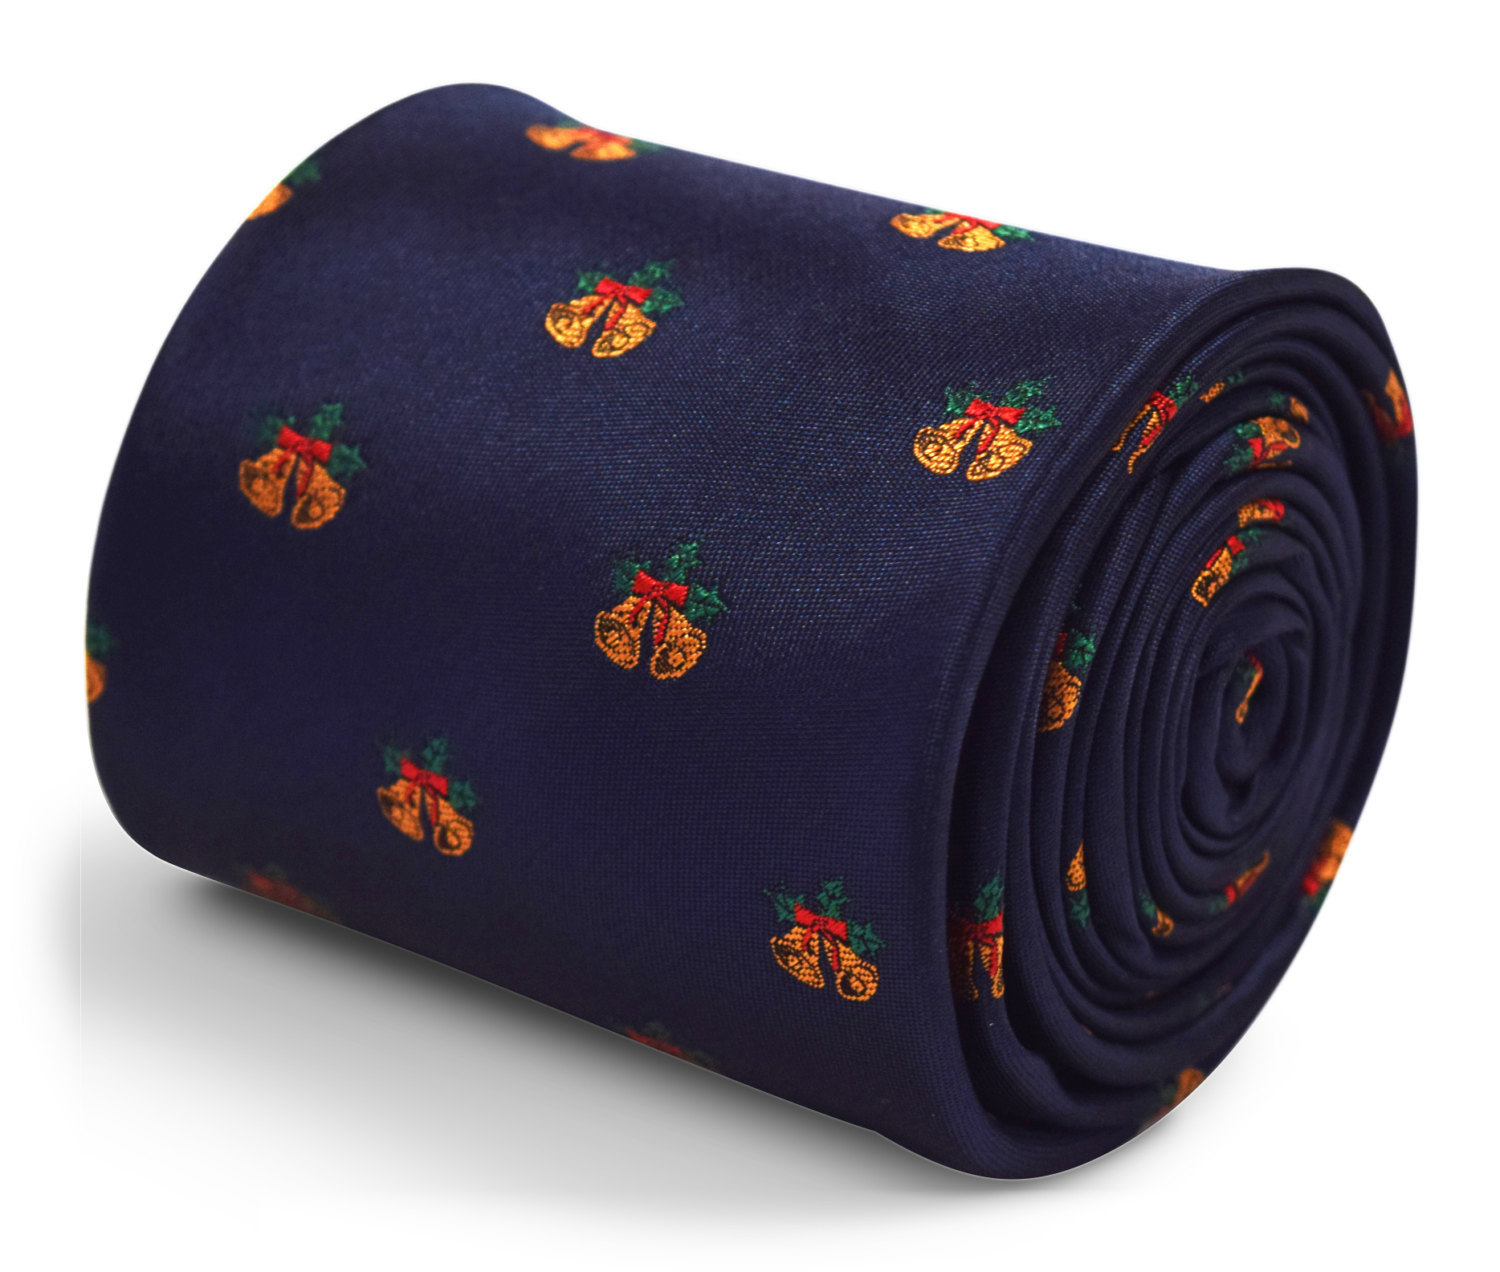 navy blue tie with bells embroidered design with signature floral design to the